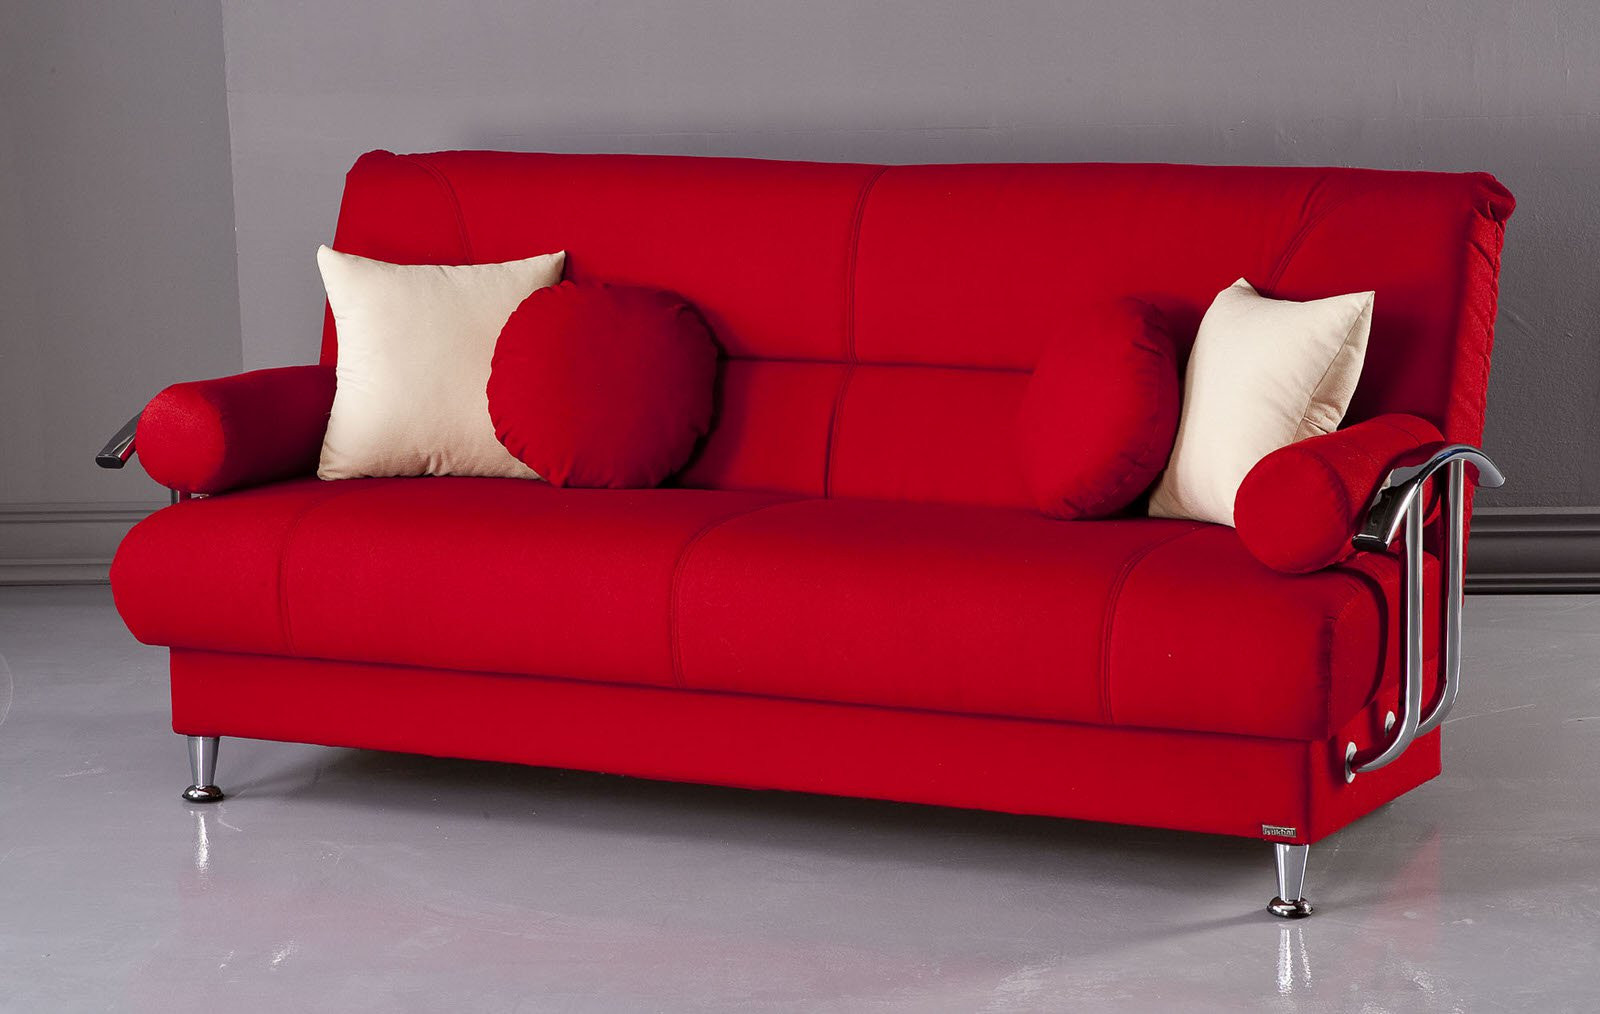 Best ideas about Red Sofa Beds . Save or Pin Best Tetris Red Convertible Sofa Bed by Sunset Now.